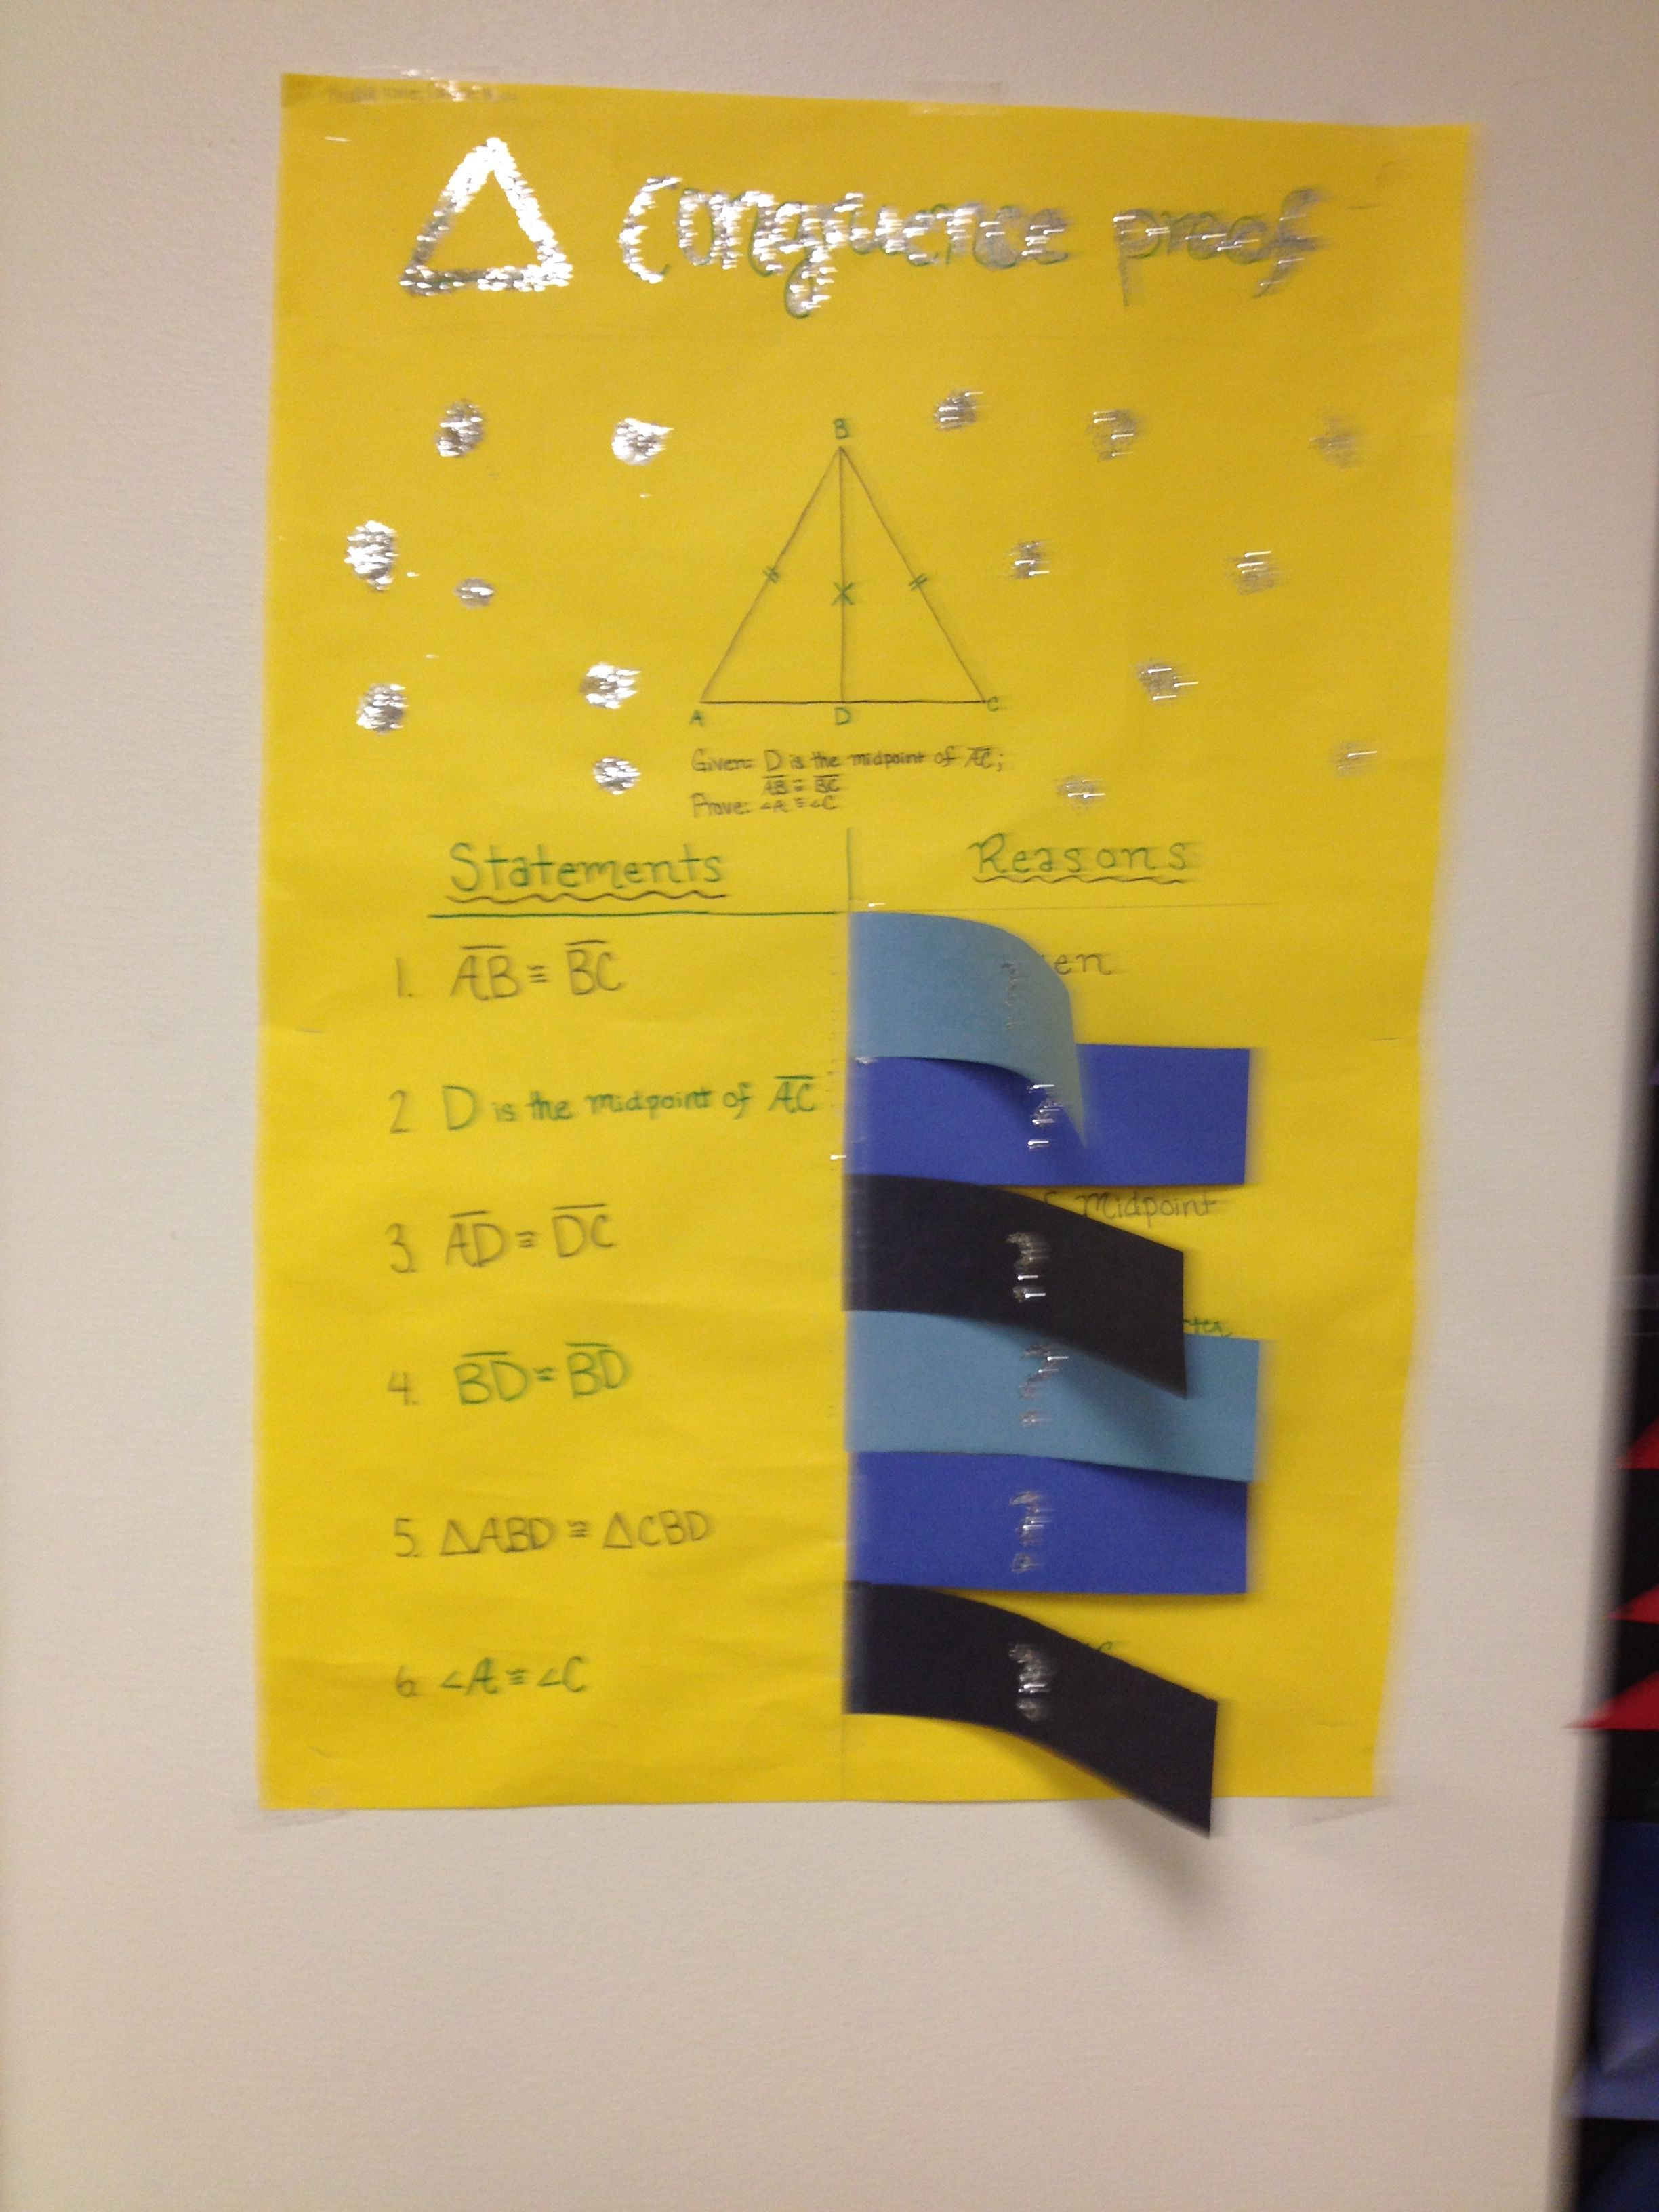 Great review! Congruent triangles. Maybe have students